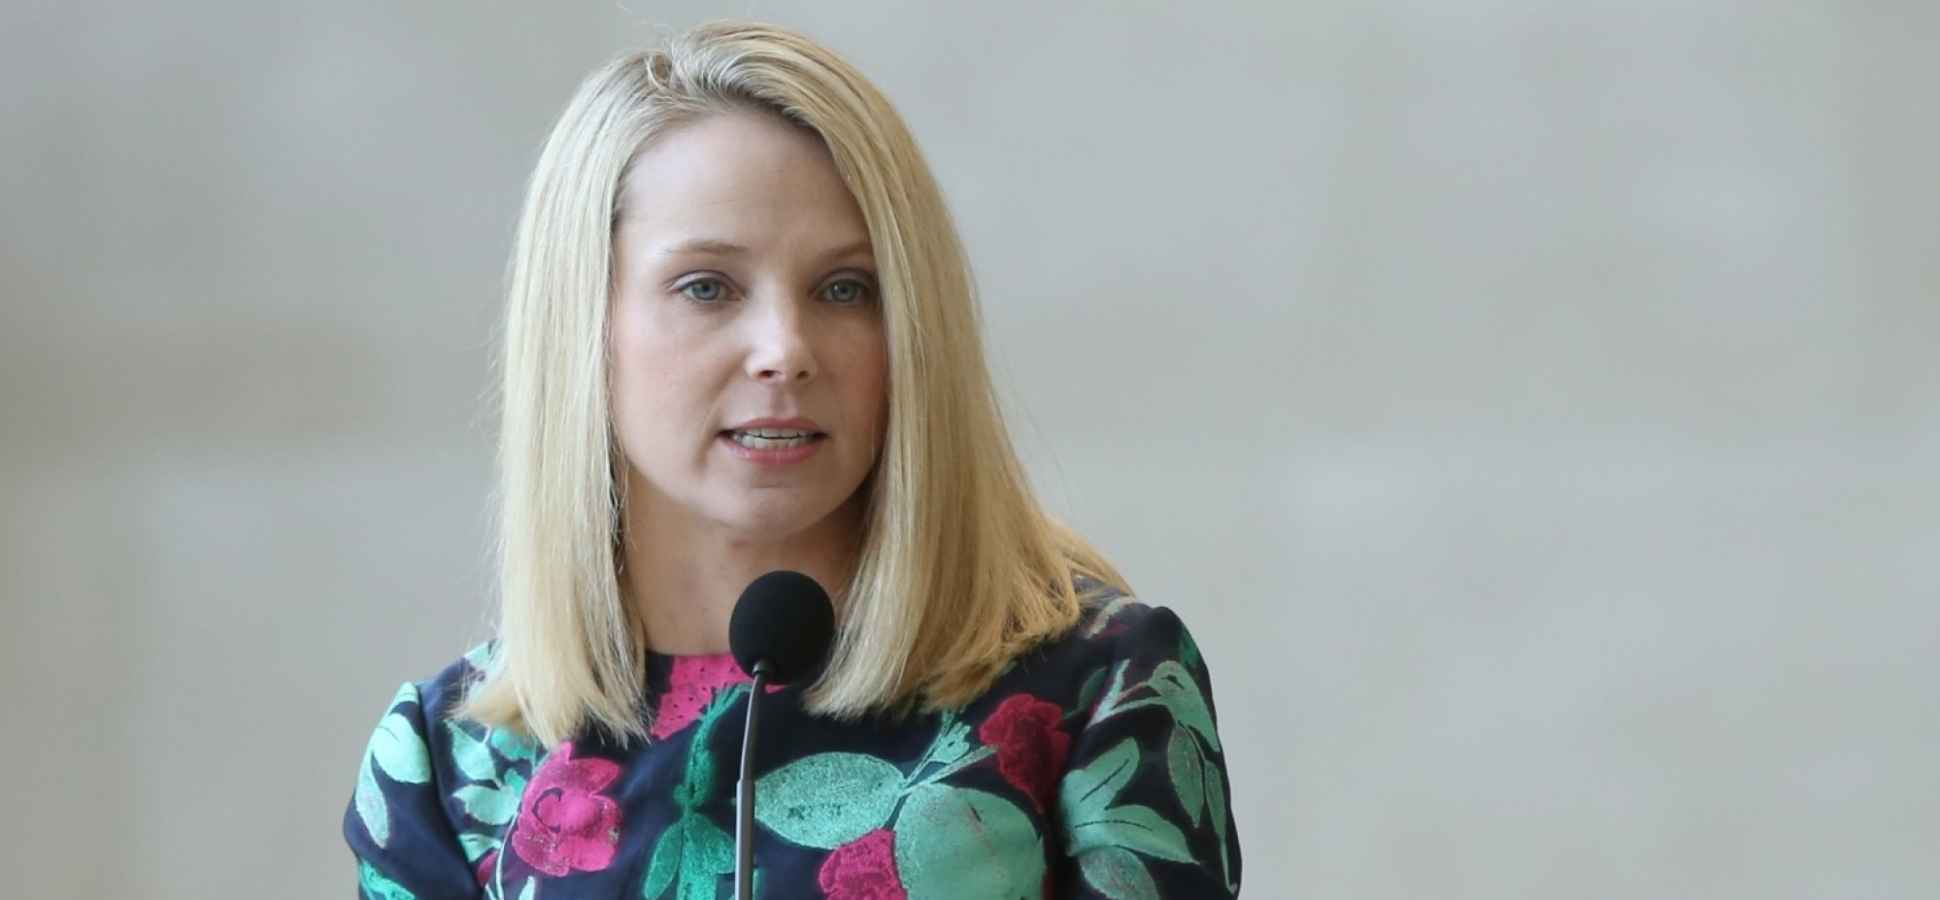 Marissa Mayer Still Wants to Be a CEO, but Uber Hasn't Tapped Her